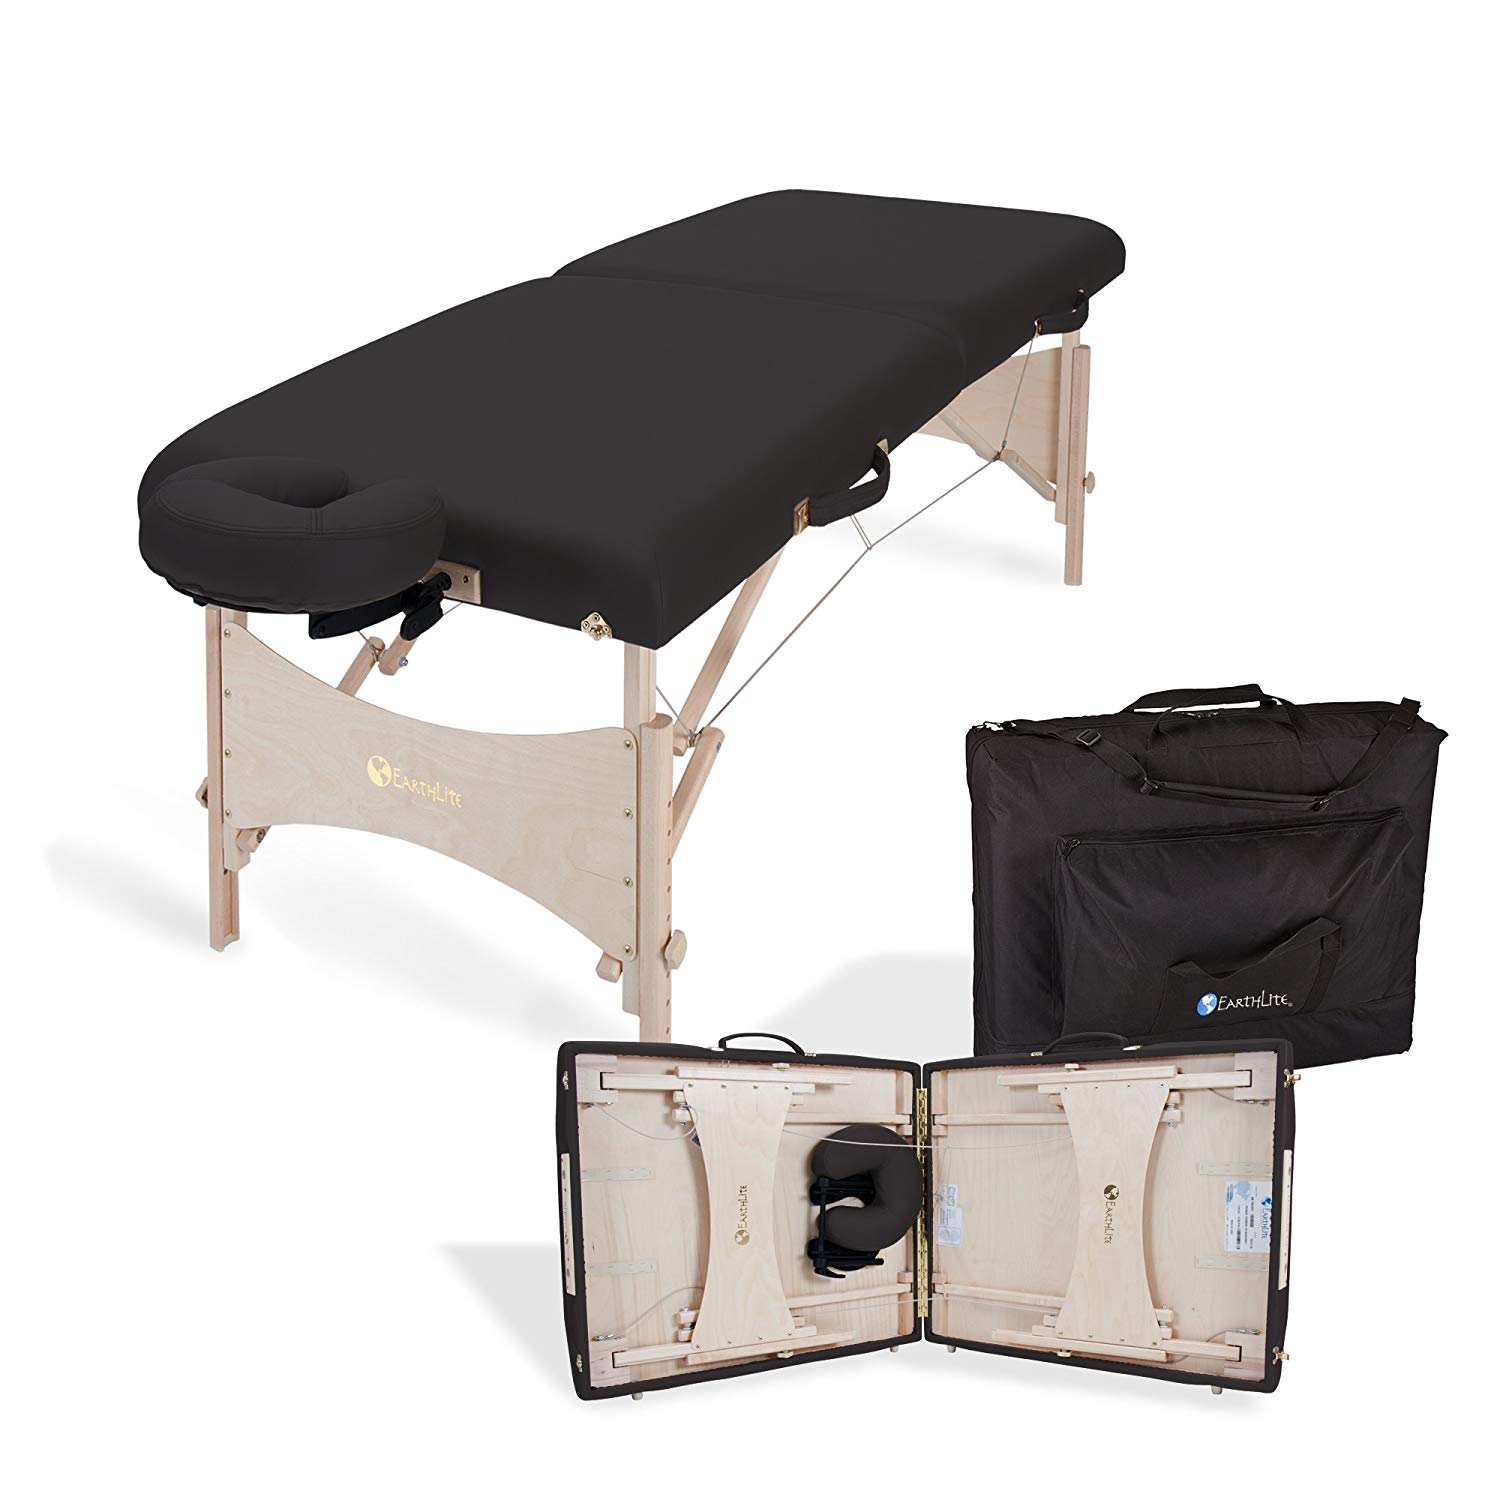 massage table reviews top 5 best products rh top5bestproducts com massage table reviews costco Massage Menu Sample